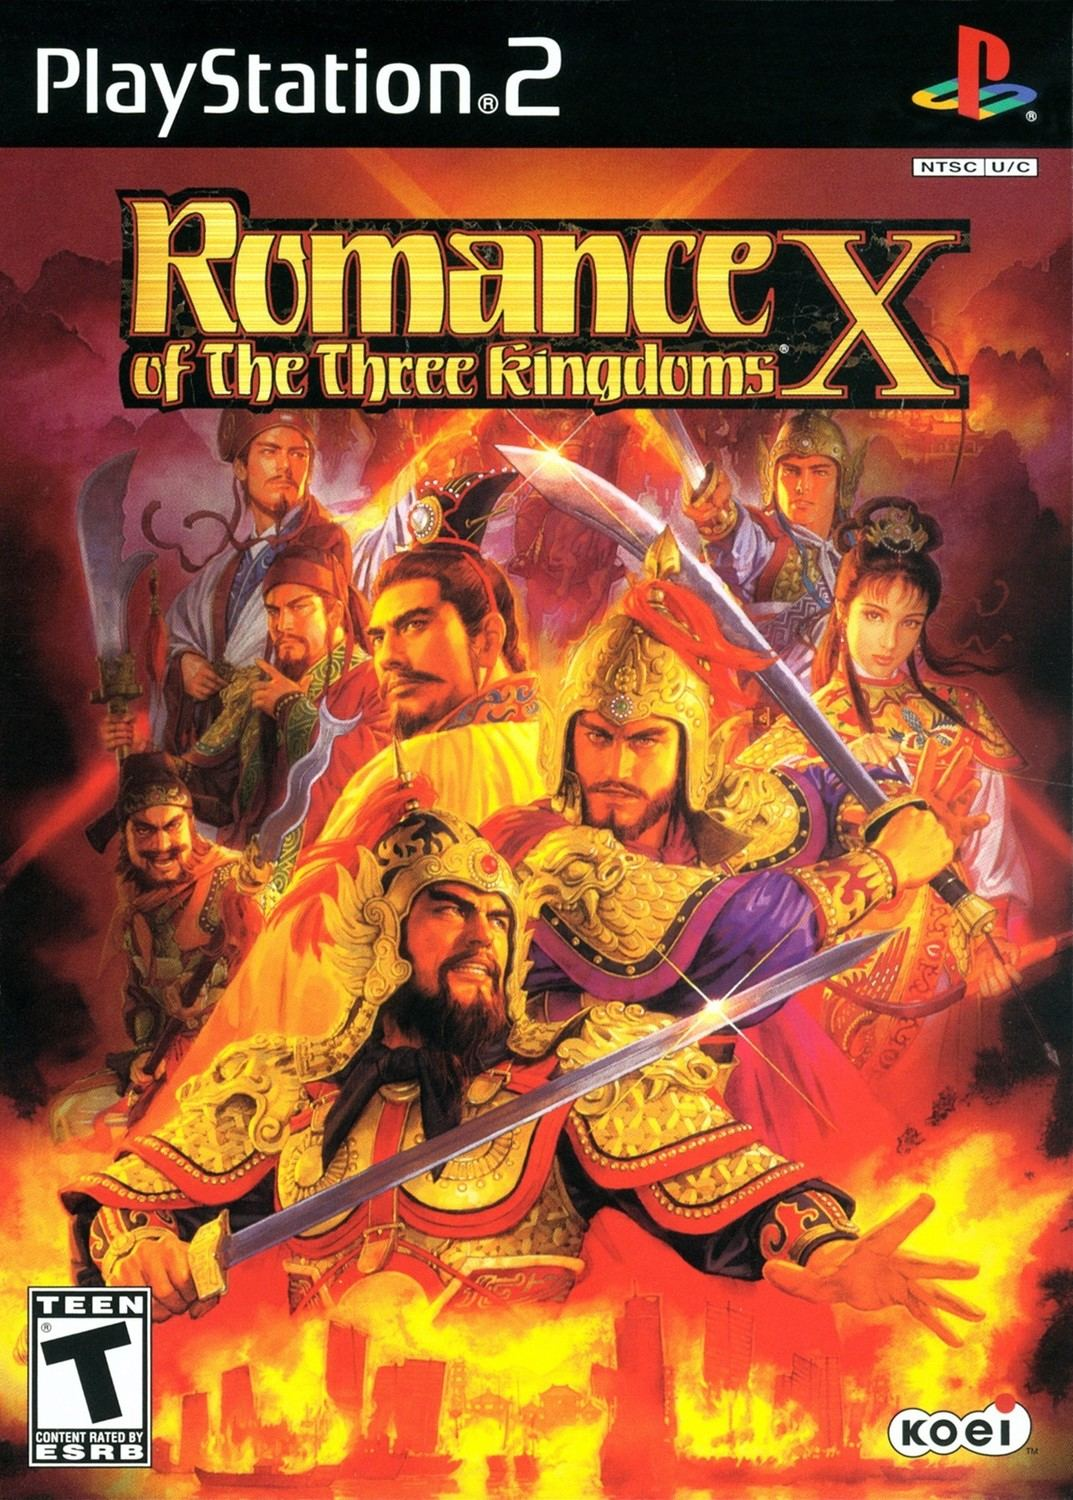 Romance of the Three Kingdoms X - Playstation 2: PS2 game